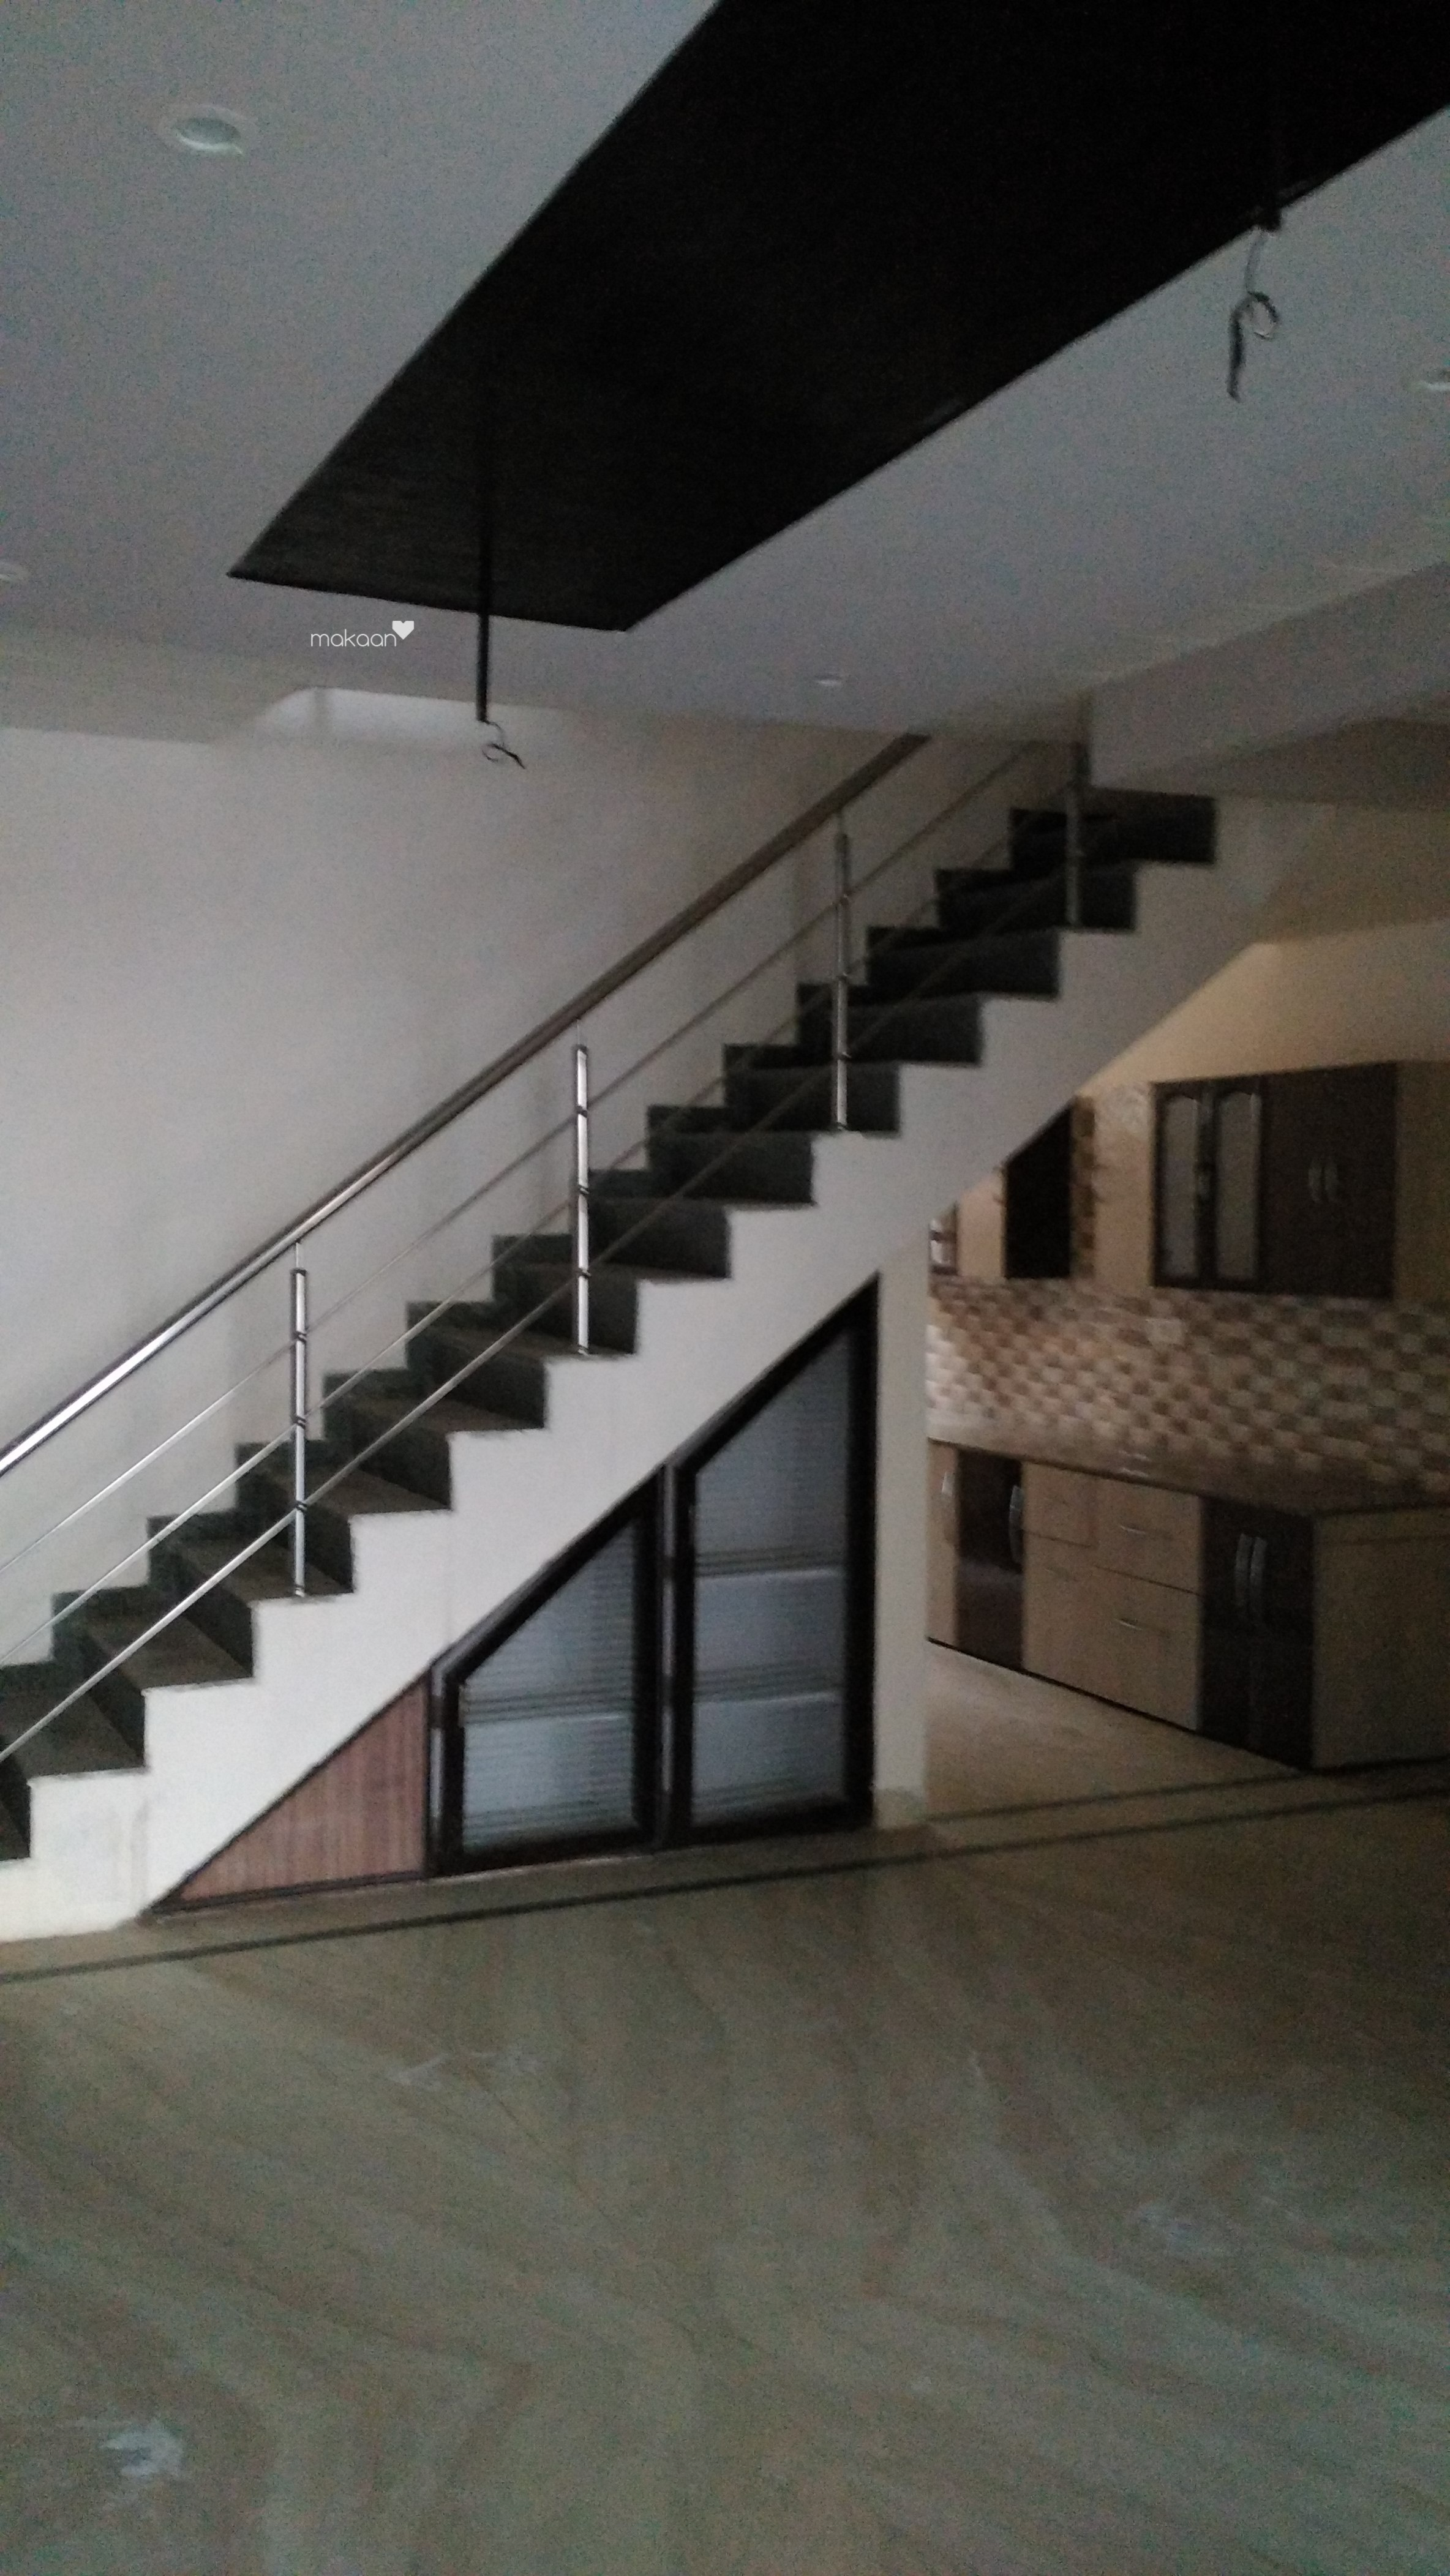 1400 sq ft 3BHK 3BHK+3T (1,400 sq ft) + Store Room Property By Nirmaaninfratech In Project, Dhakoli